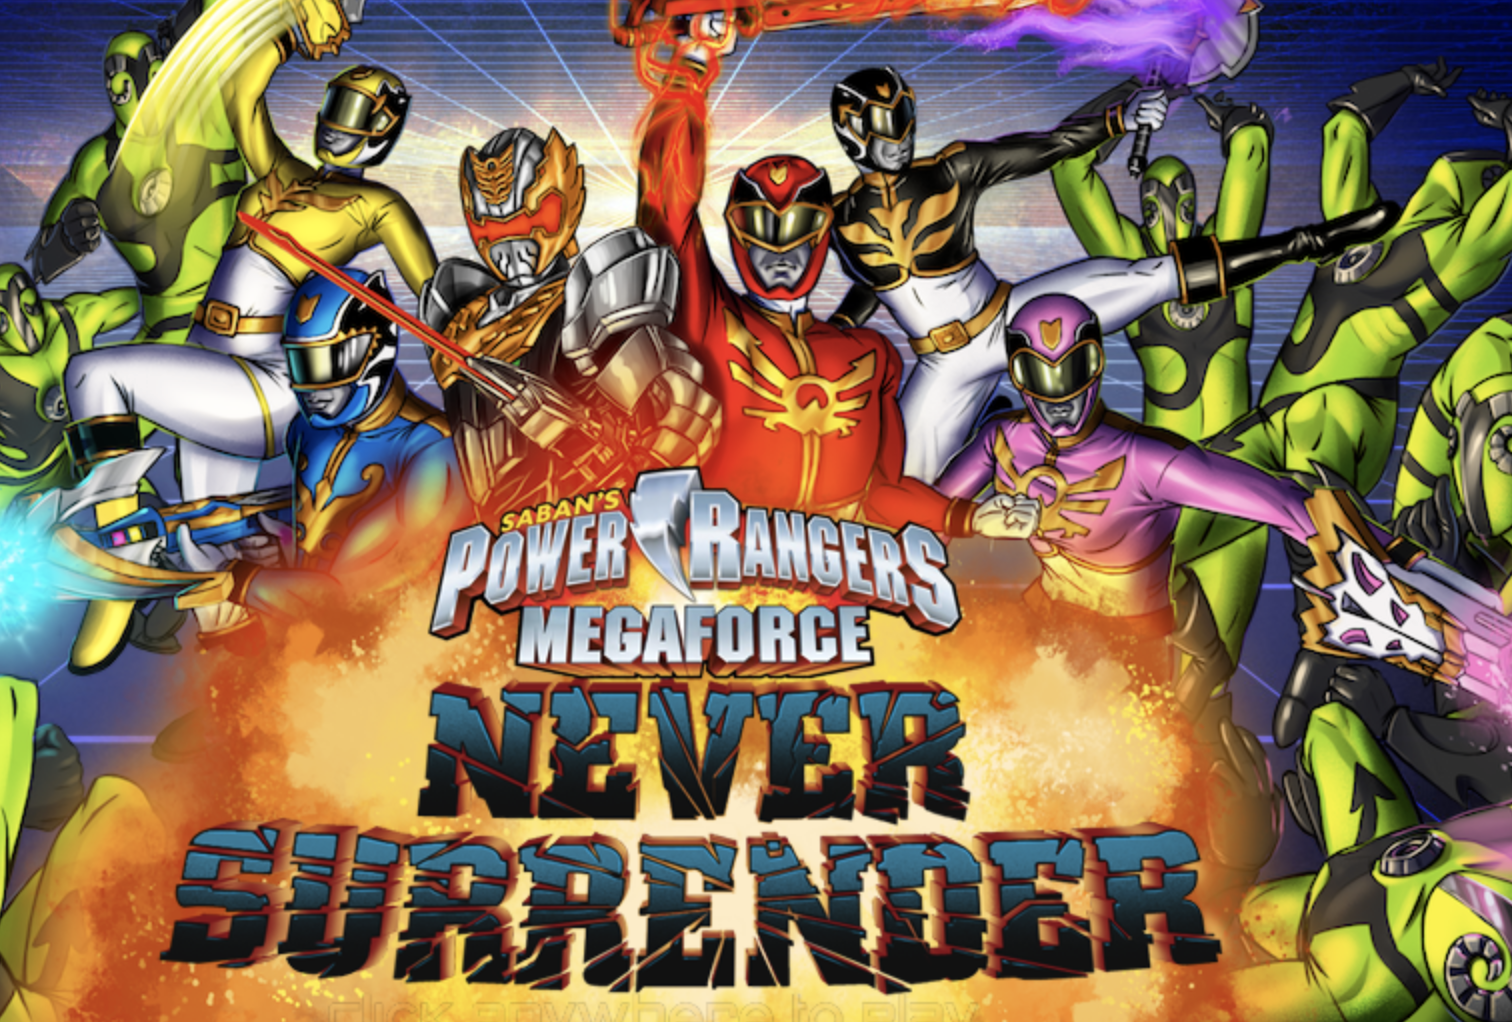 Play Power Rangers Never Surrender Game in 2020 Power